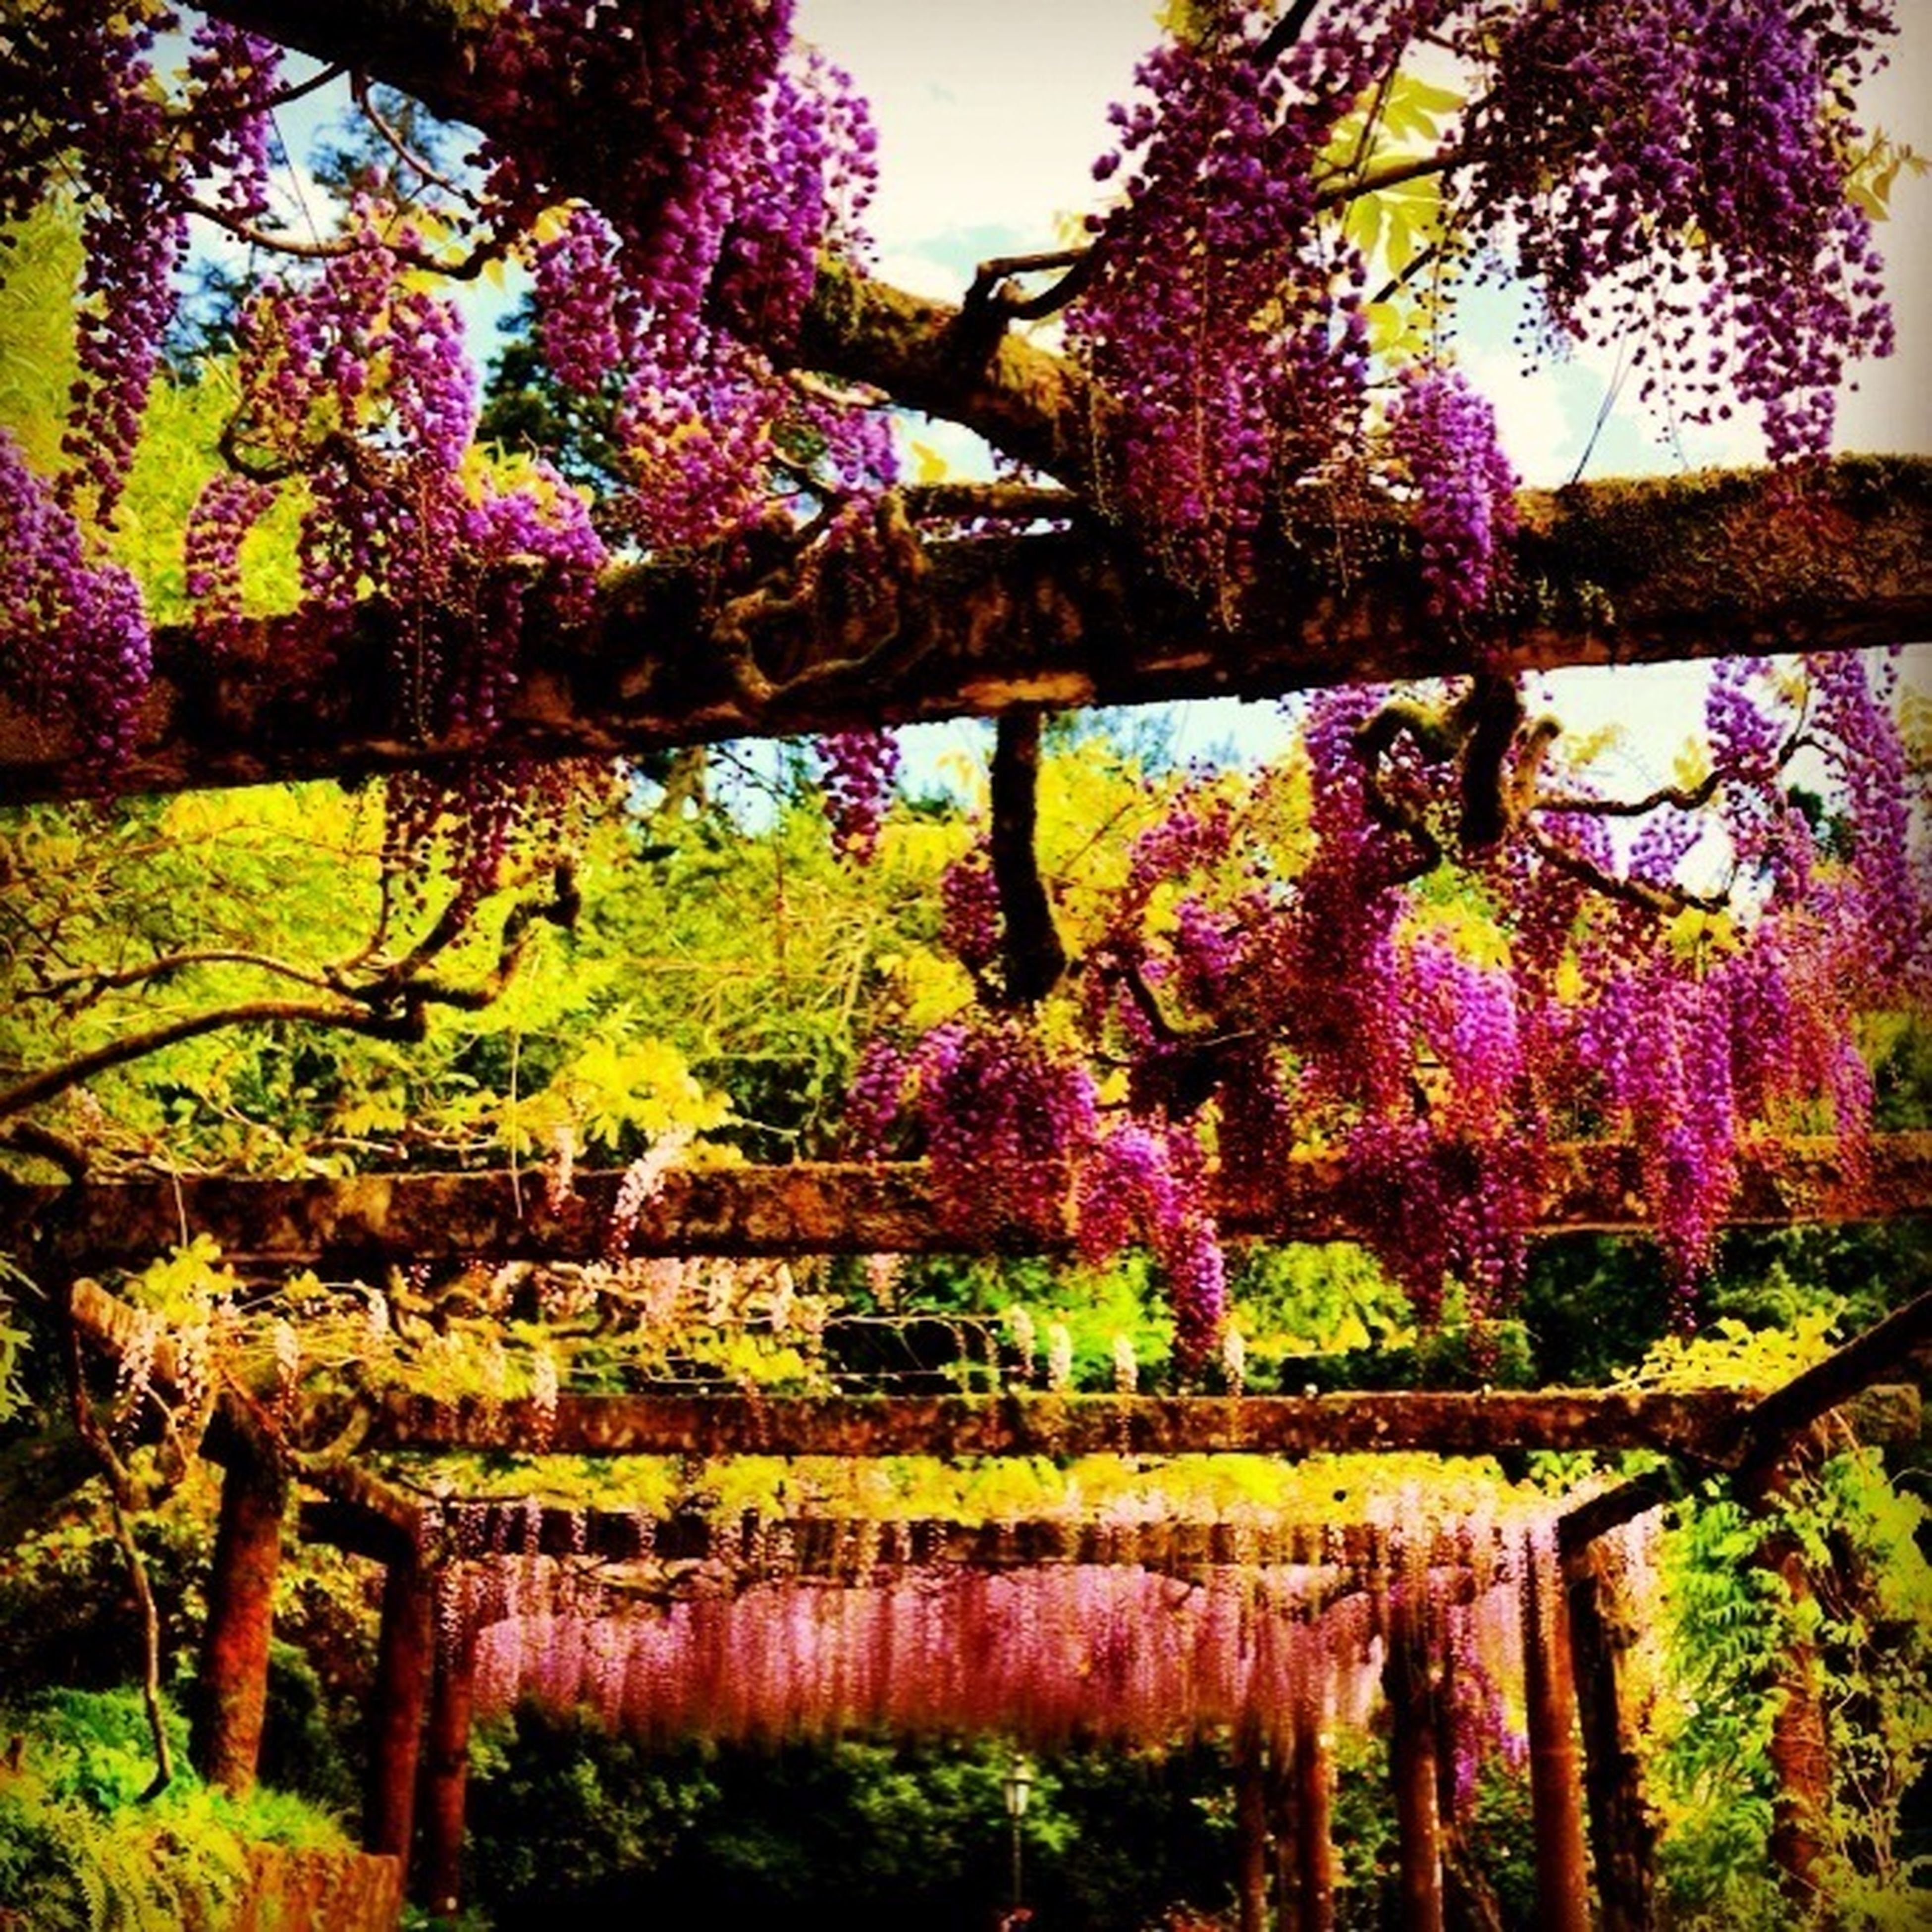 tree, flower, growth, branch, beauty in nature, nature, tranquility, pink color, tree trunk, park - man made space, plant, tranquil scene, outdoors, railing, freshness, day, purple, no people, scenics, fence